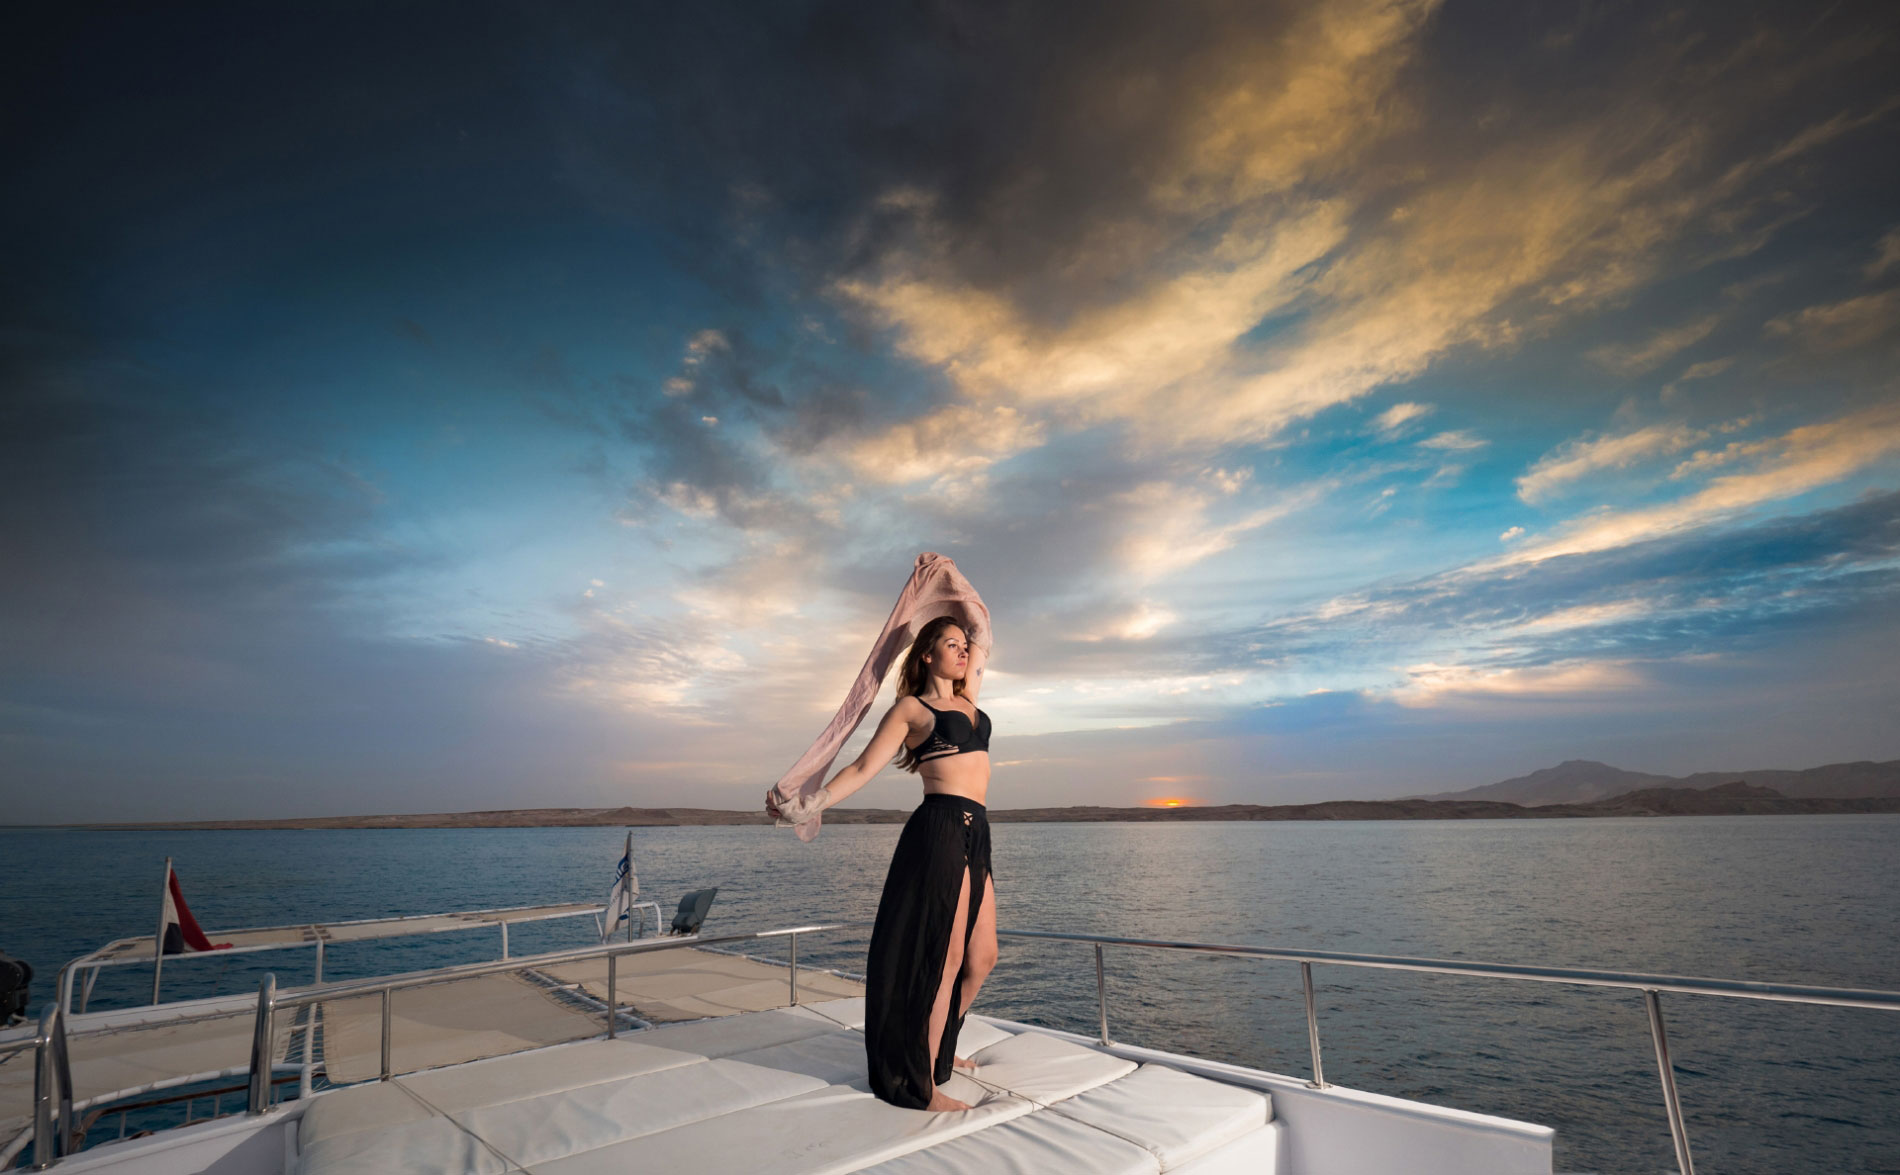 Girl-on-boat-at-sunset